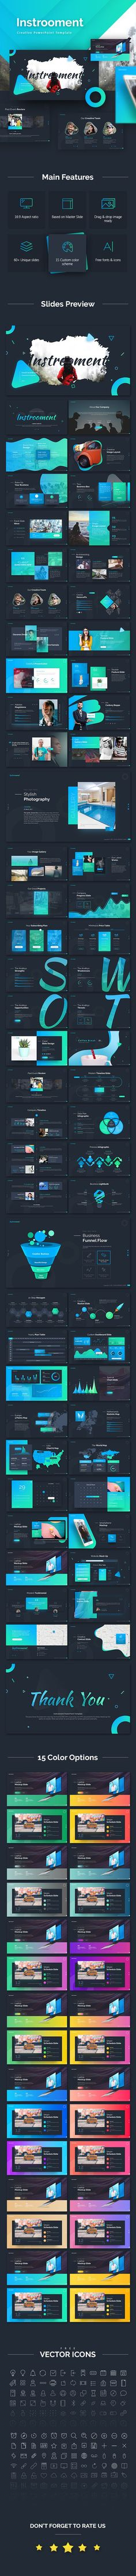 Instrooment Creative PowerPoint Template — Powerpoint PPTX #advertisement #pptx • Available here ➝ https://graphicriver.net/item/instrooment-creative-powerpoint-template/21055619?ref=rabosch